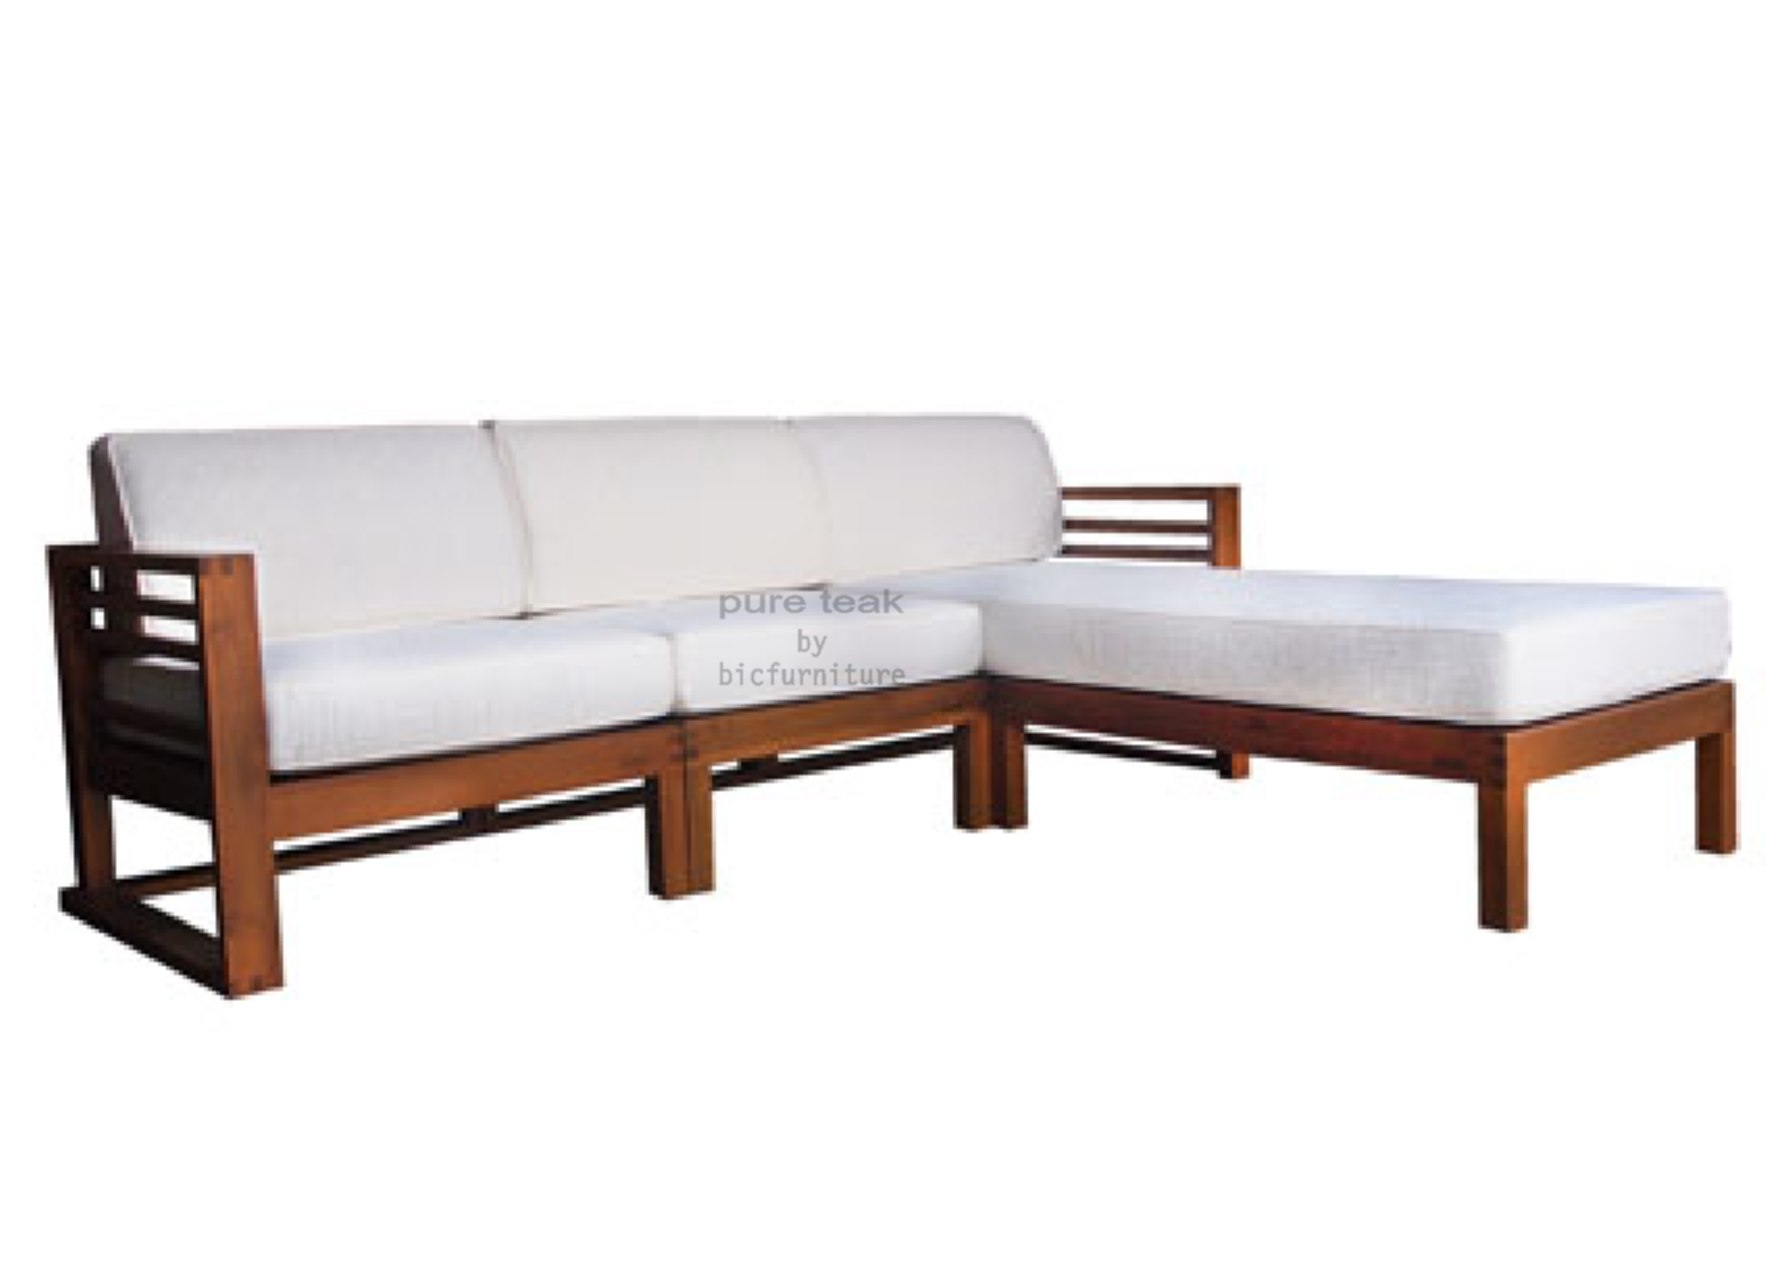 L Shape Wooden Sofa Set Designs Images Galleries With A Bite